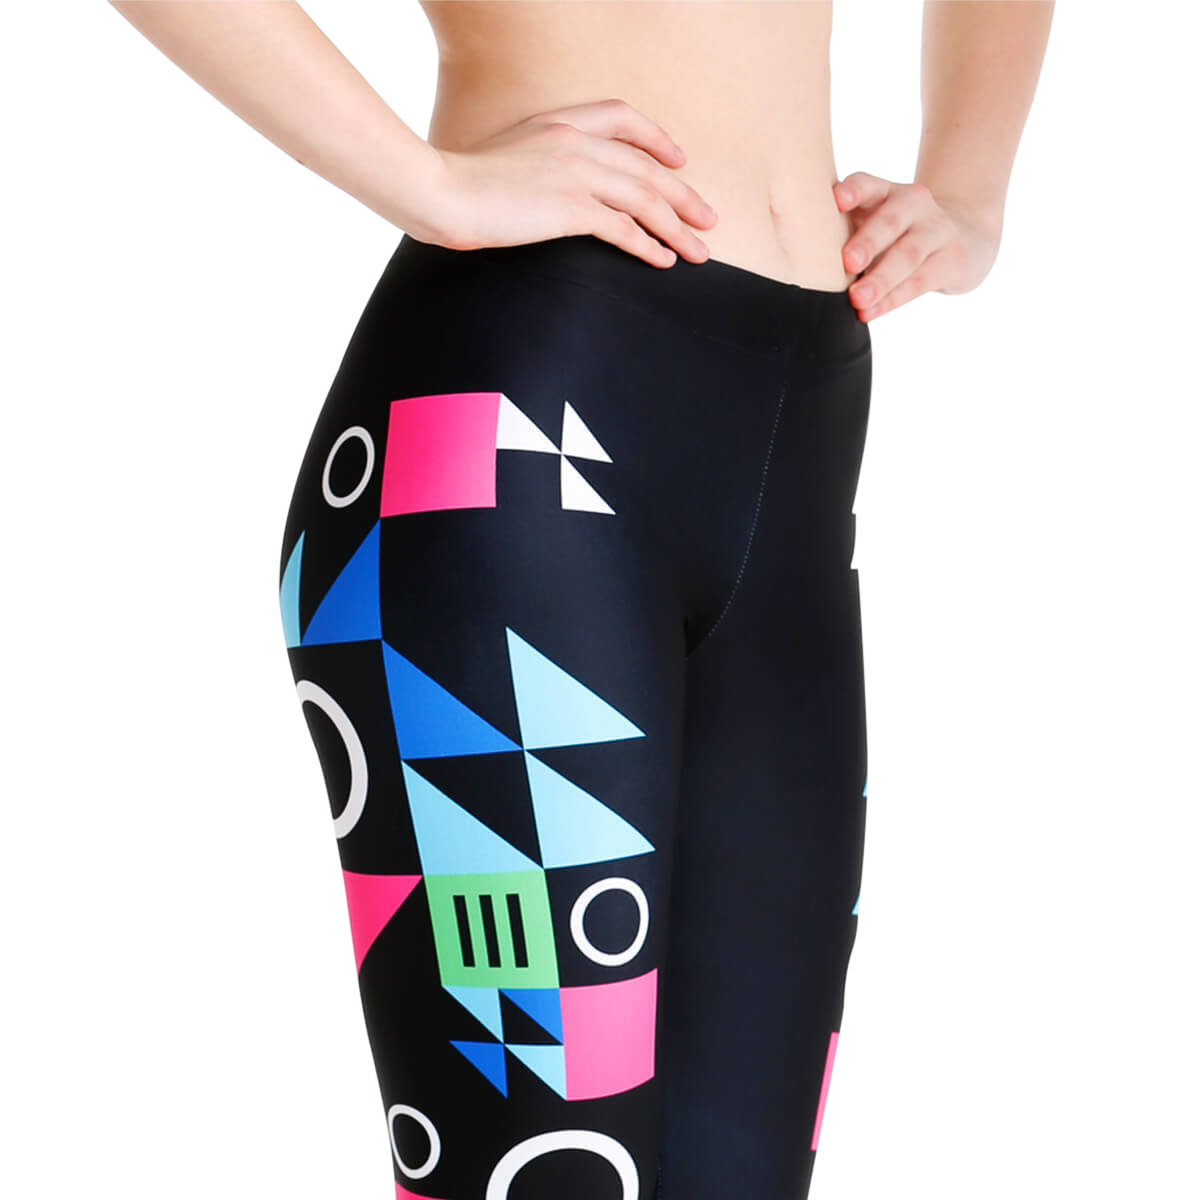 Woman wearing an activewear black pants with colorful print design